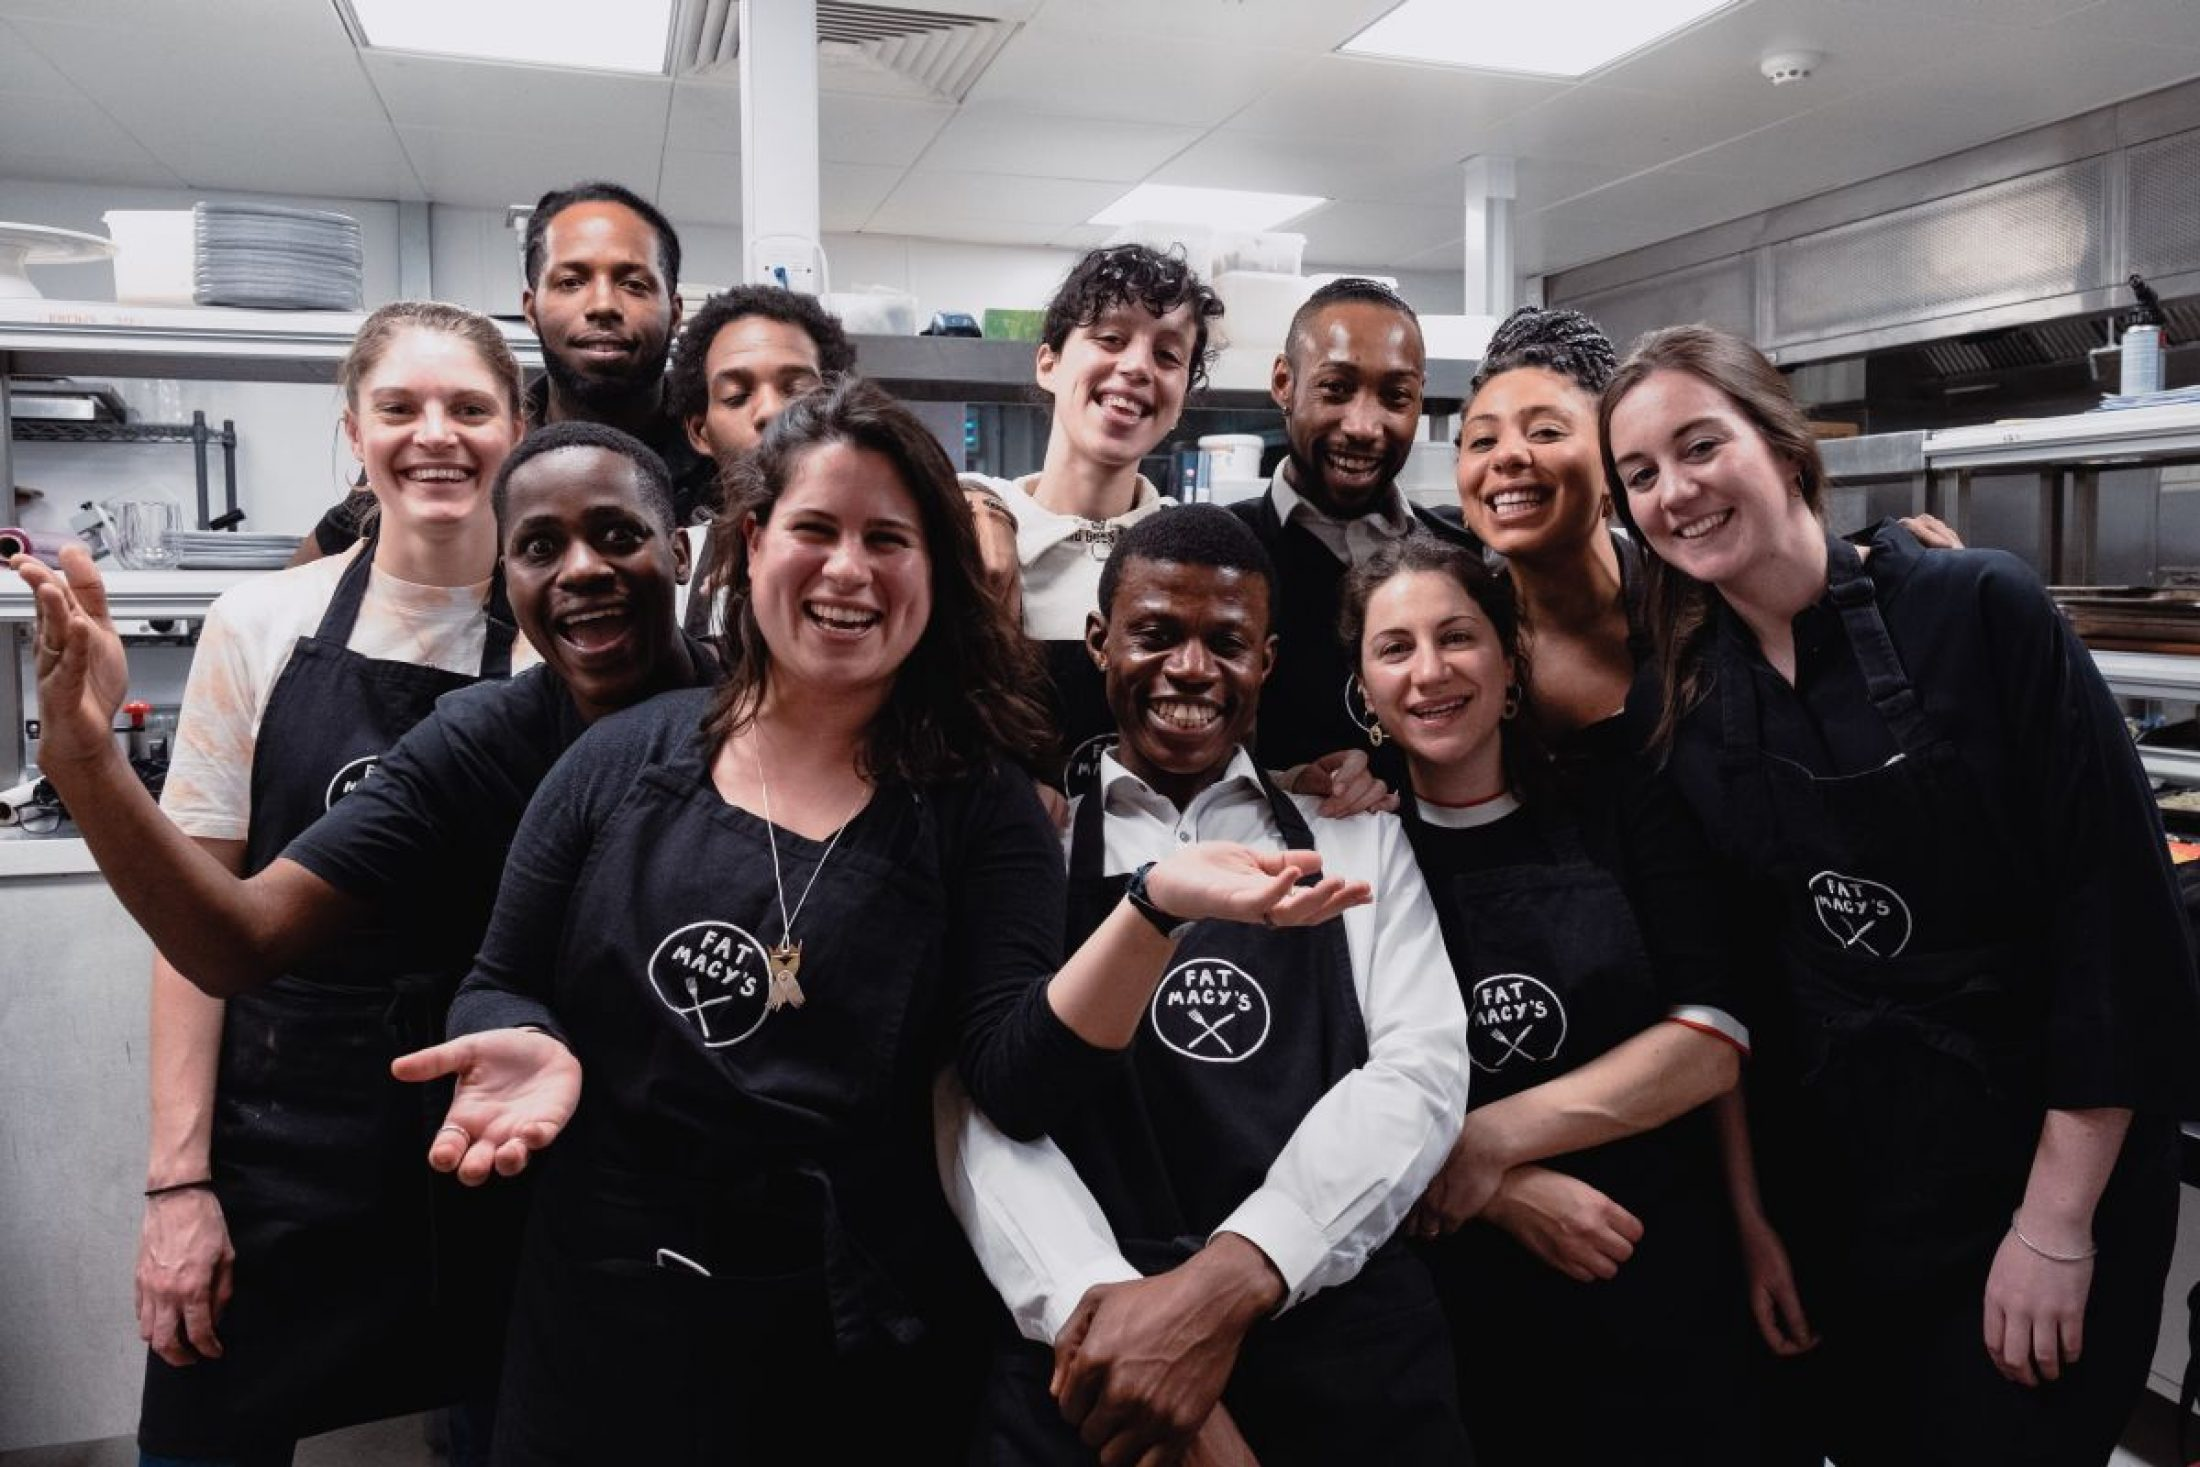 Fat Macy's trains young people to be chefs and supports them in finding secure accommodation